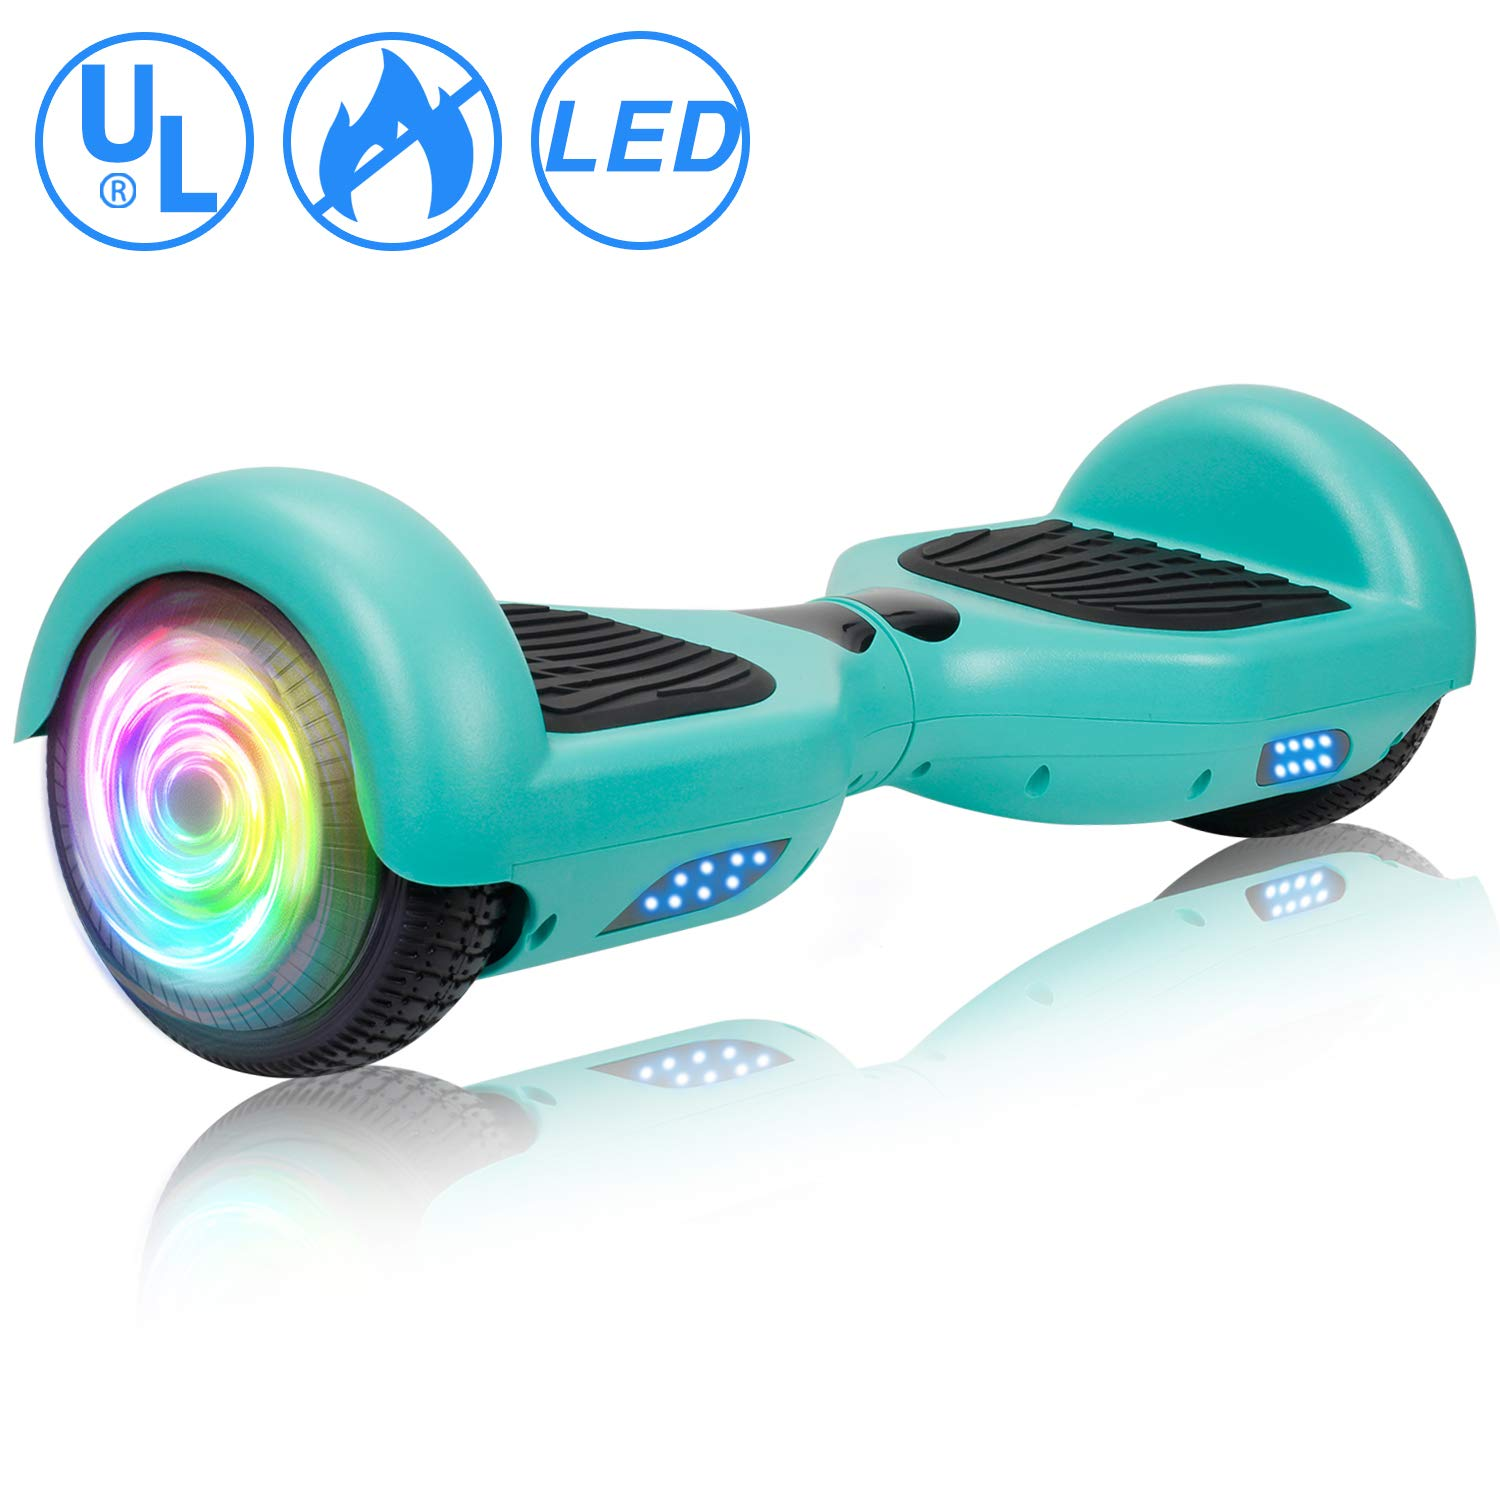 SISIGAD Hoverboard, Self Balancing Hoverboard, 6.5 Two-Wheel Self Balancing Scooter, Smart Hover Board for Kids Gift, Adult Electric Scooter, UL 2272 Certified – Pure Color Series No Bluetooth